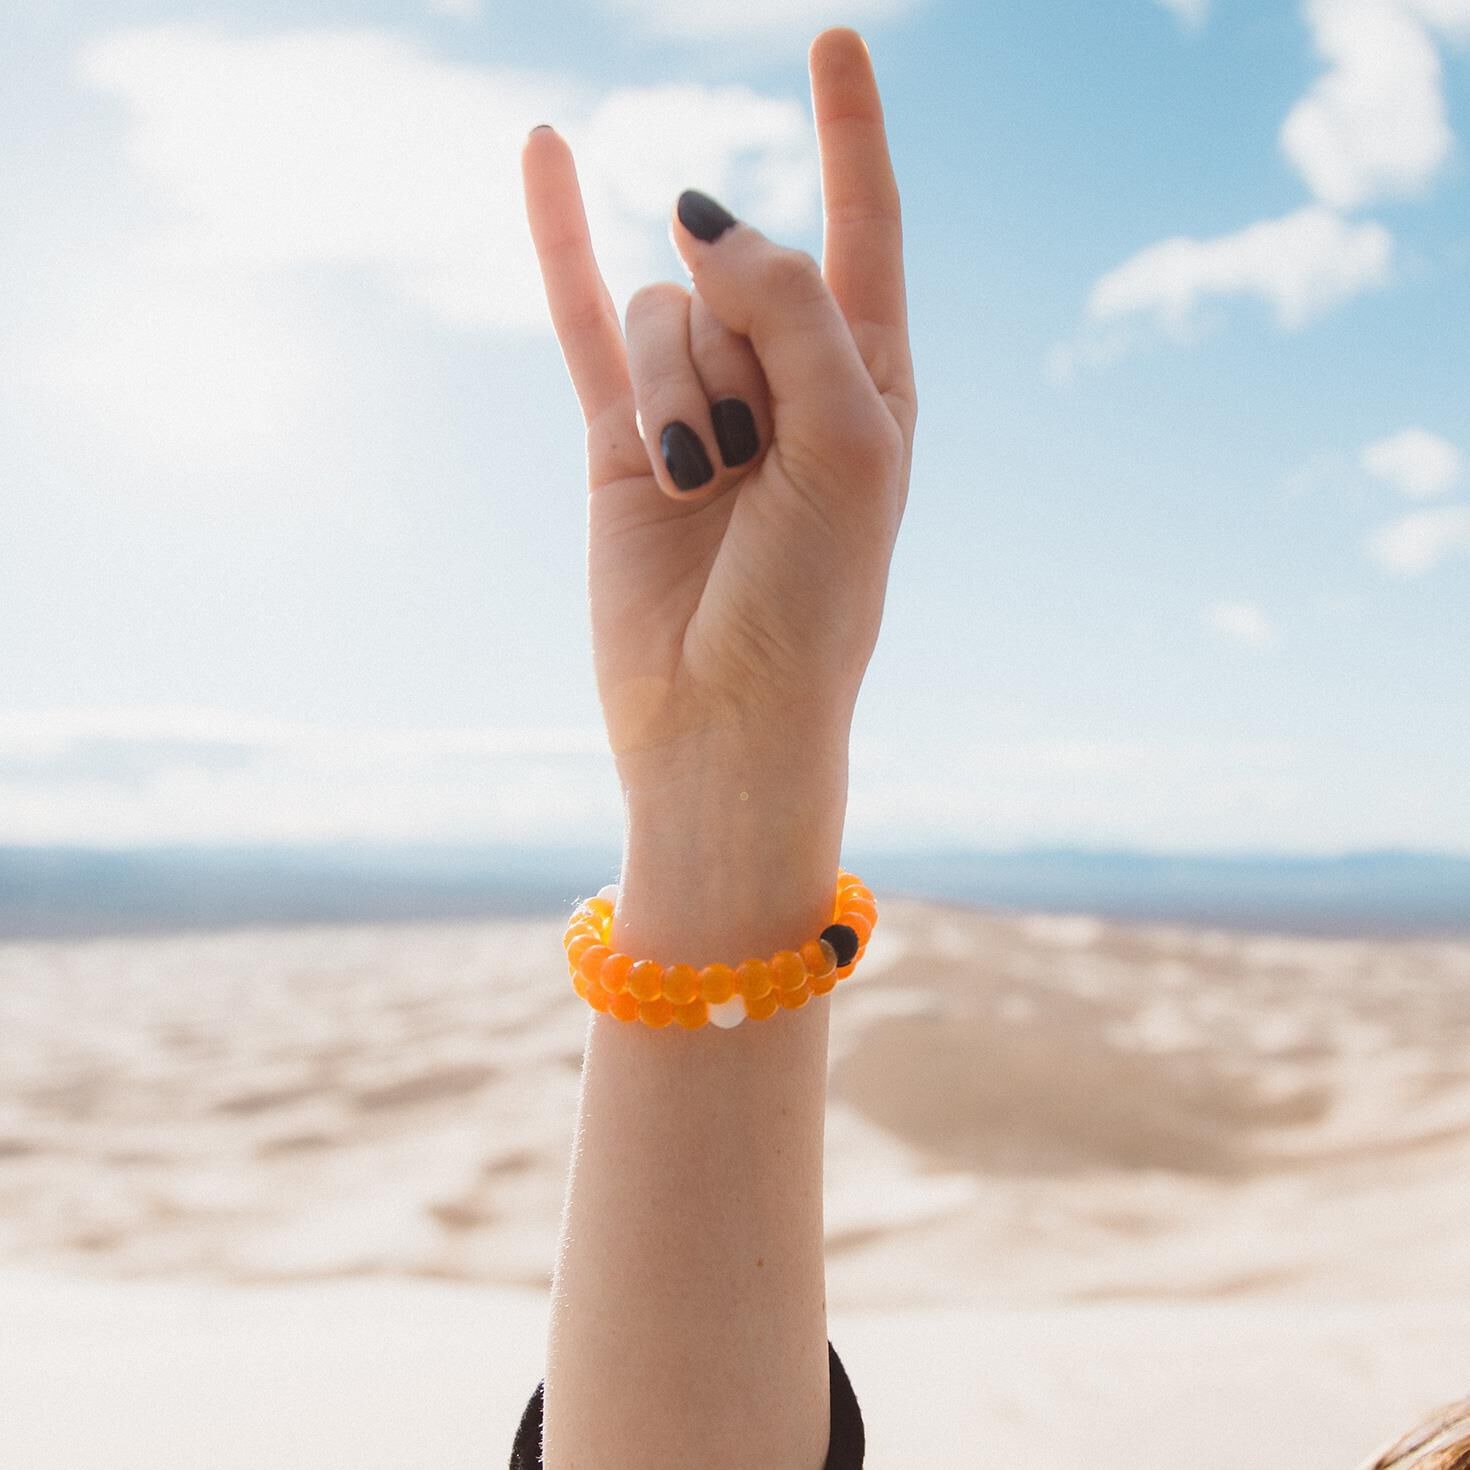 image regarding Lokai Bracelet Meaning Printable titled Confined Version (Orange) Lokai Bracelet, Medium